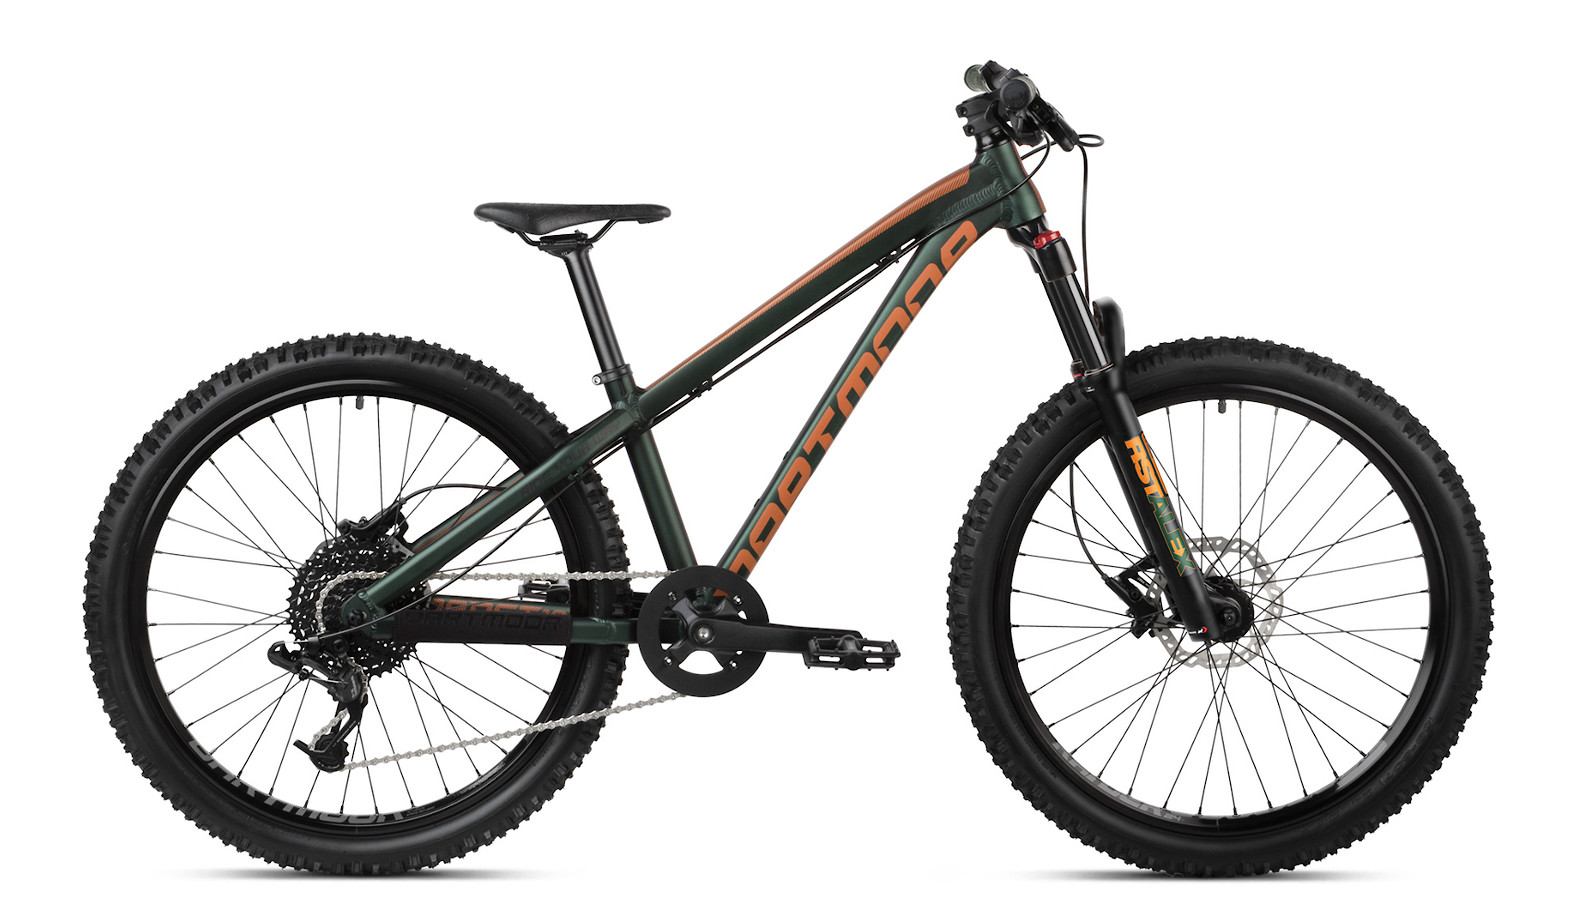 2019 Dartmoor Hornet Junior Bike